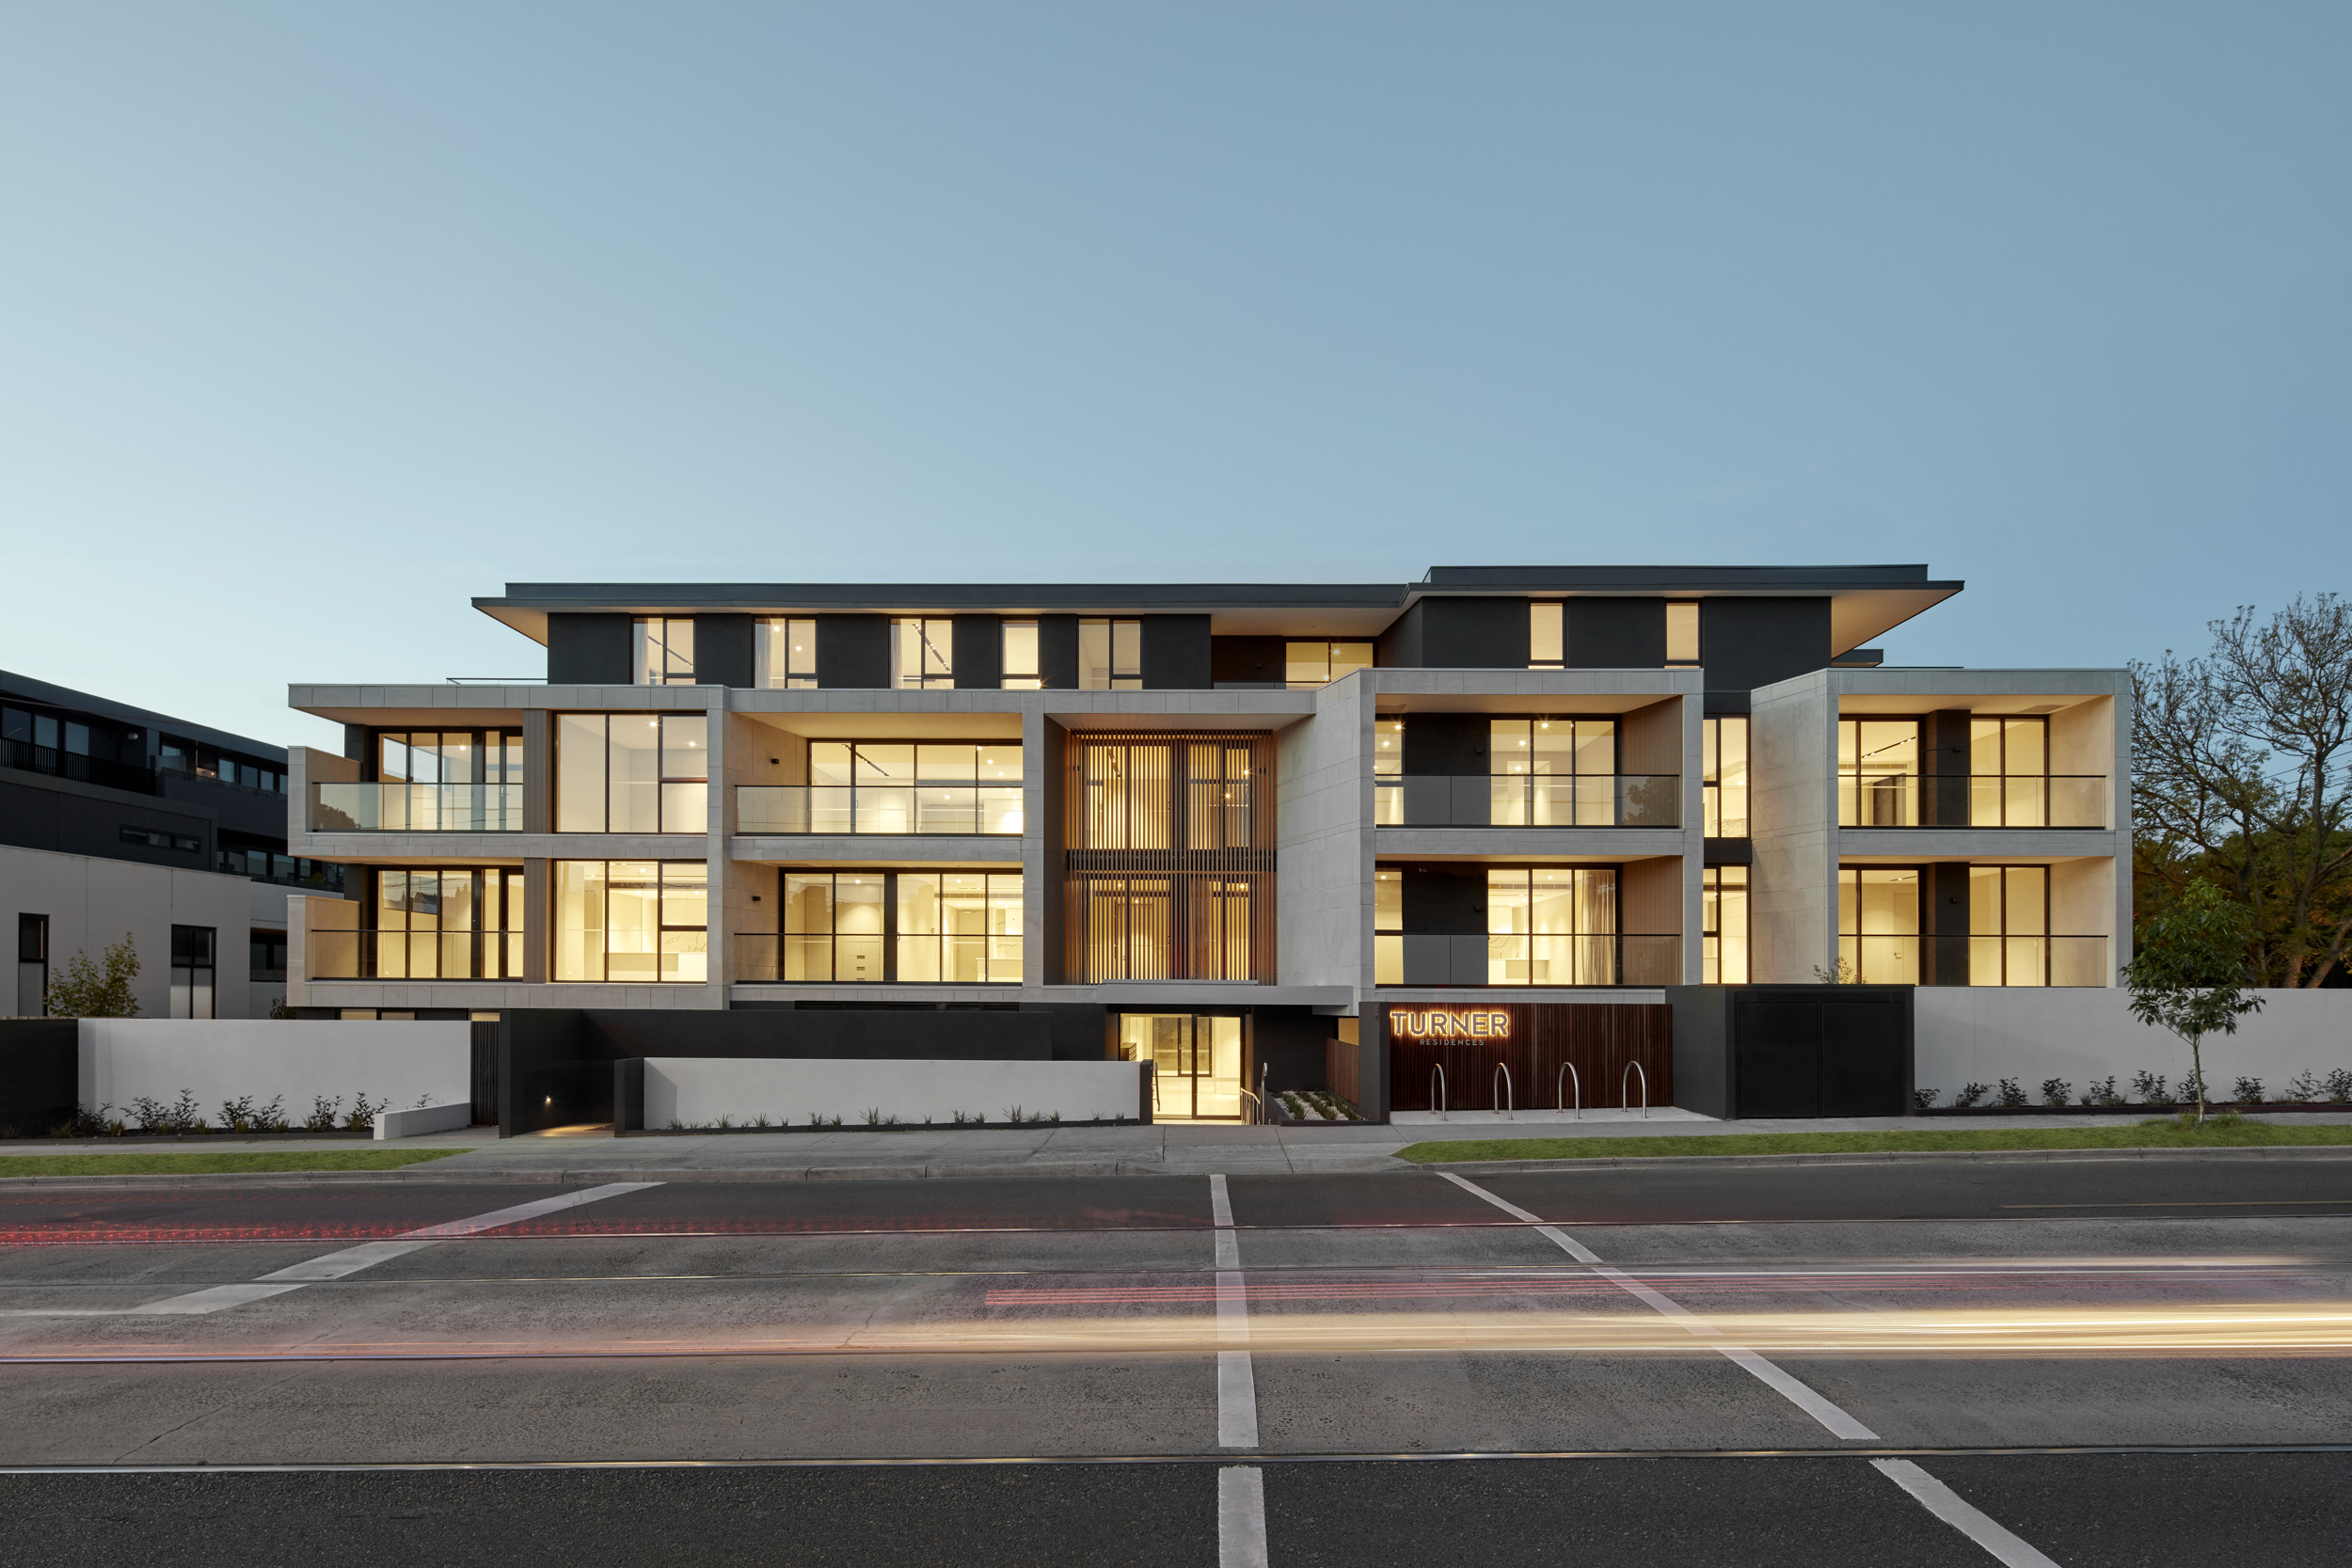 Turner Residences, a new benchmark for Glen Iris